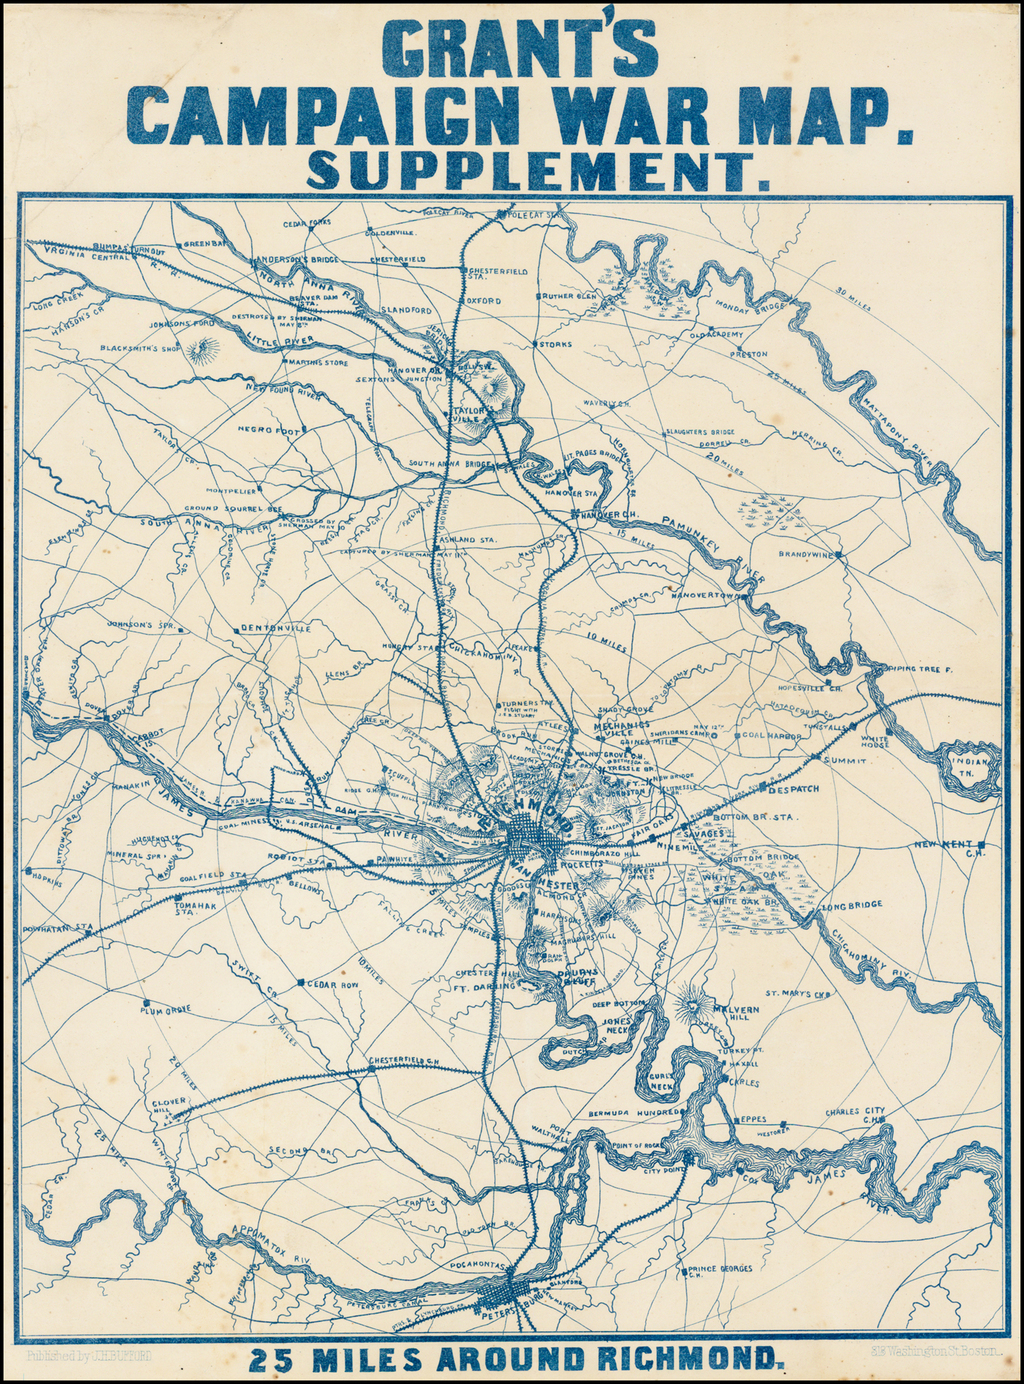 Grant's Campaign War Map. Supplement.  25 Miles Around Richmond. By J.H. Bufford